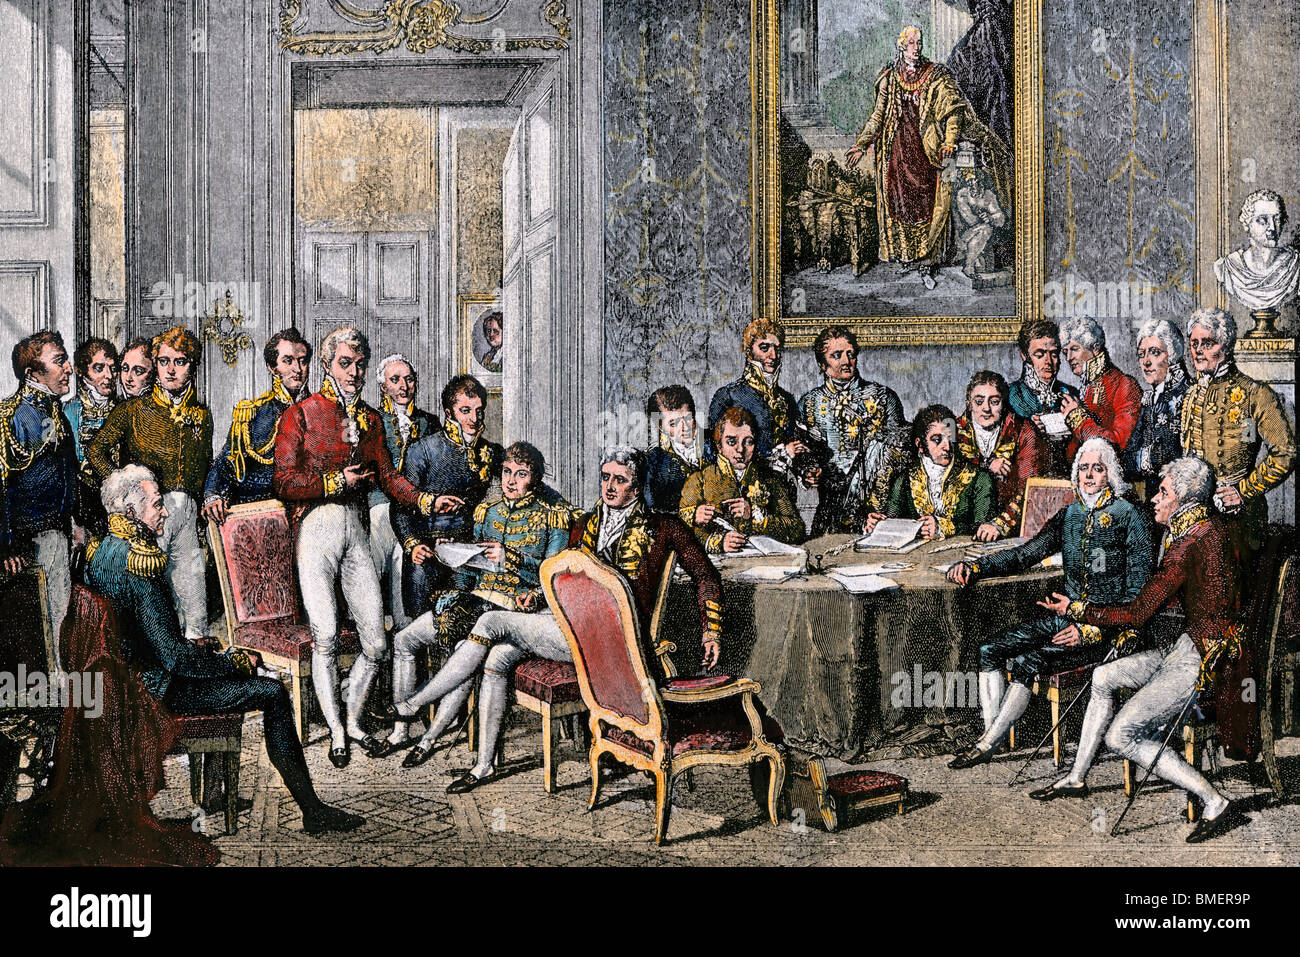 congress of vienna Congress of vienna (1815) synonyms, congress of vienna (1815) pronunciation, congress of vienna (1815) translation, english dictionary definition of congress of vienna (1815) n the european conference held at vienna from 1814-15 to settle the territorial problems left by the napoleonic wars.